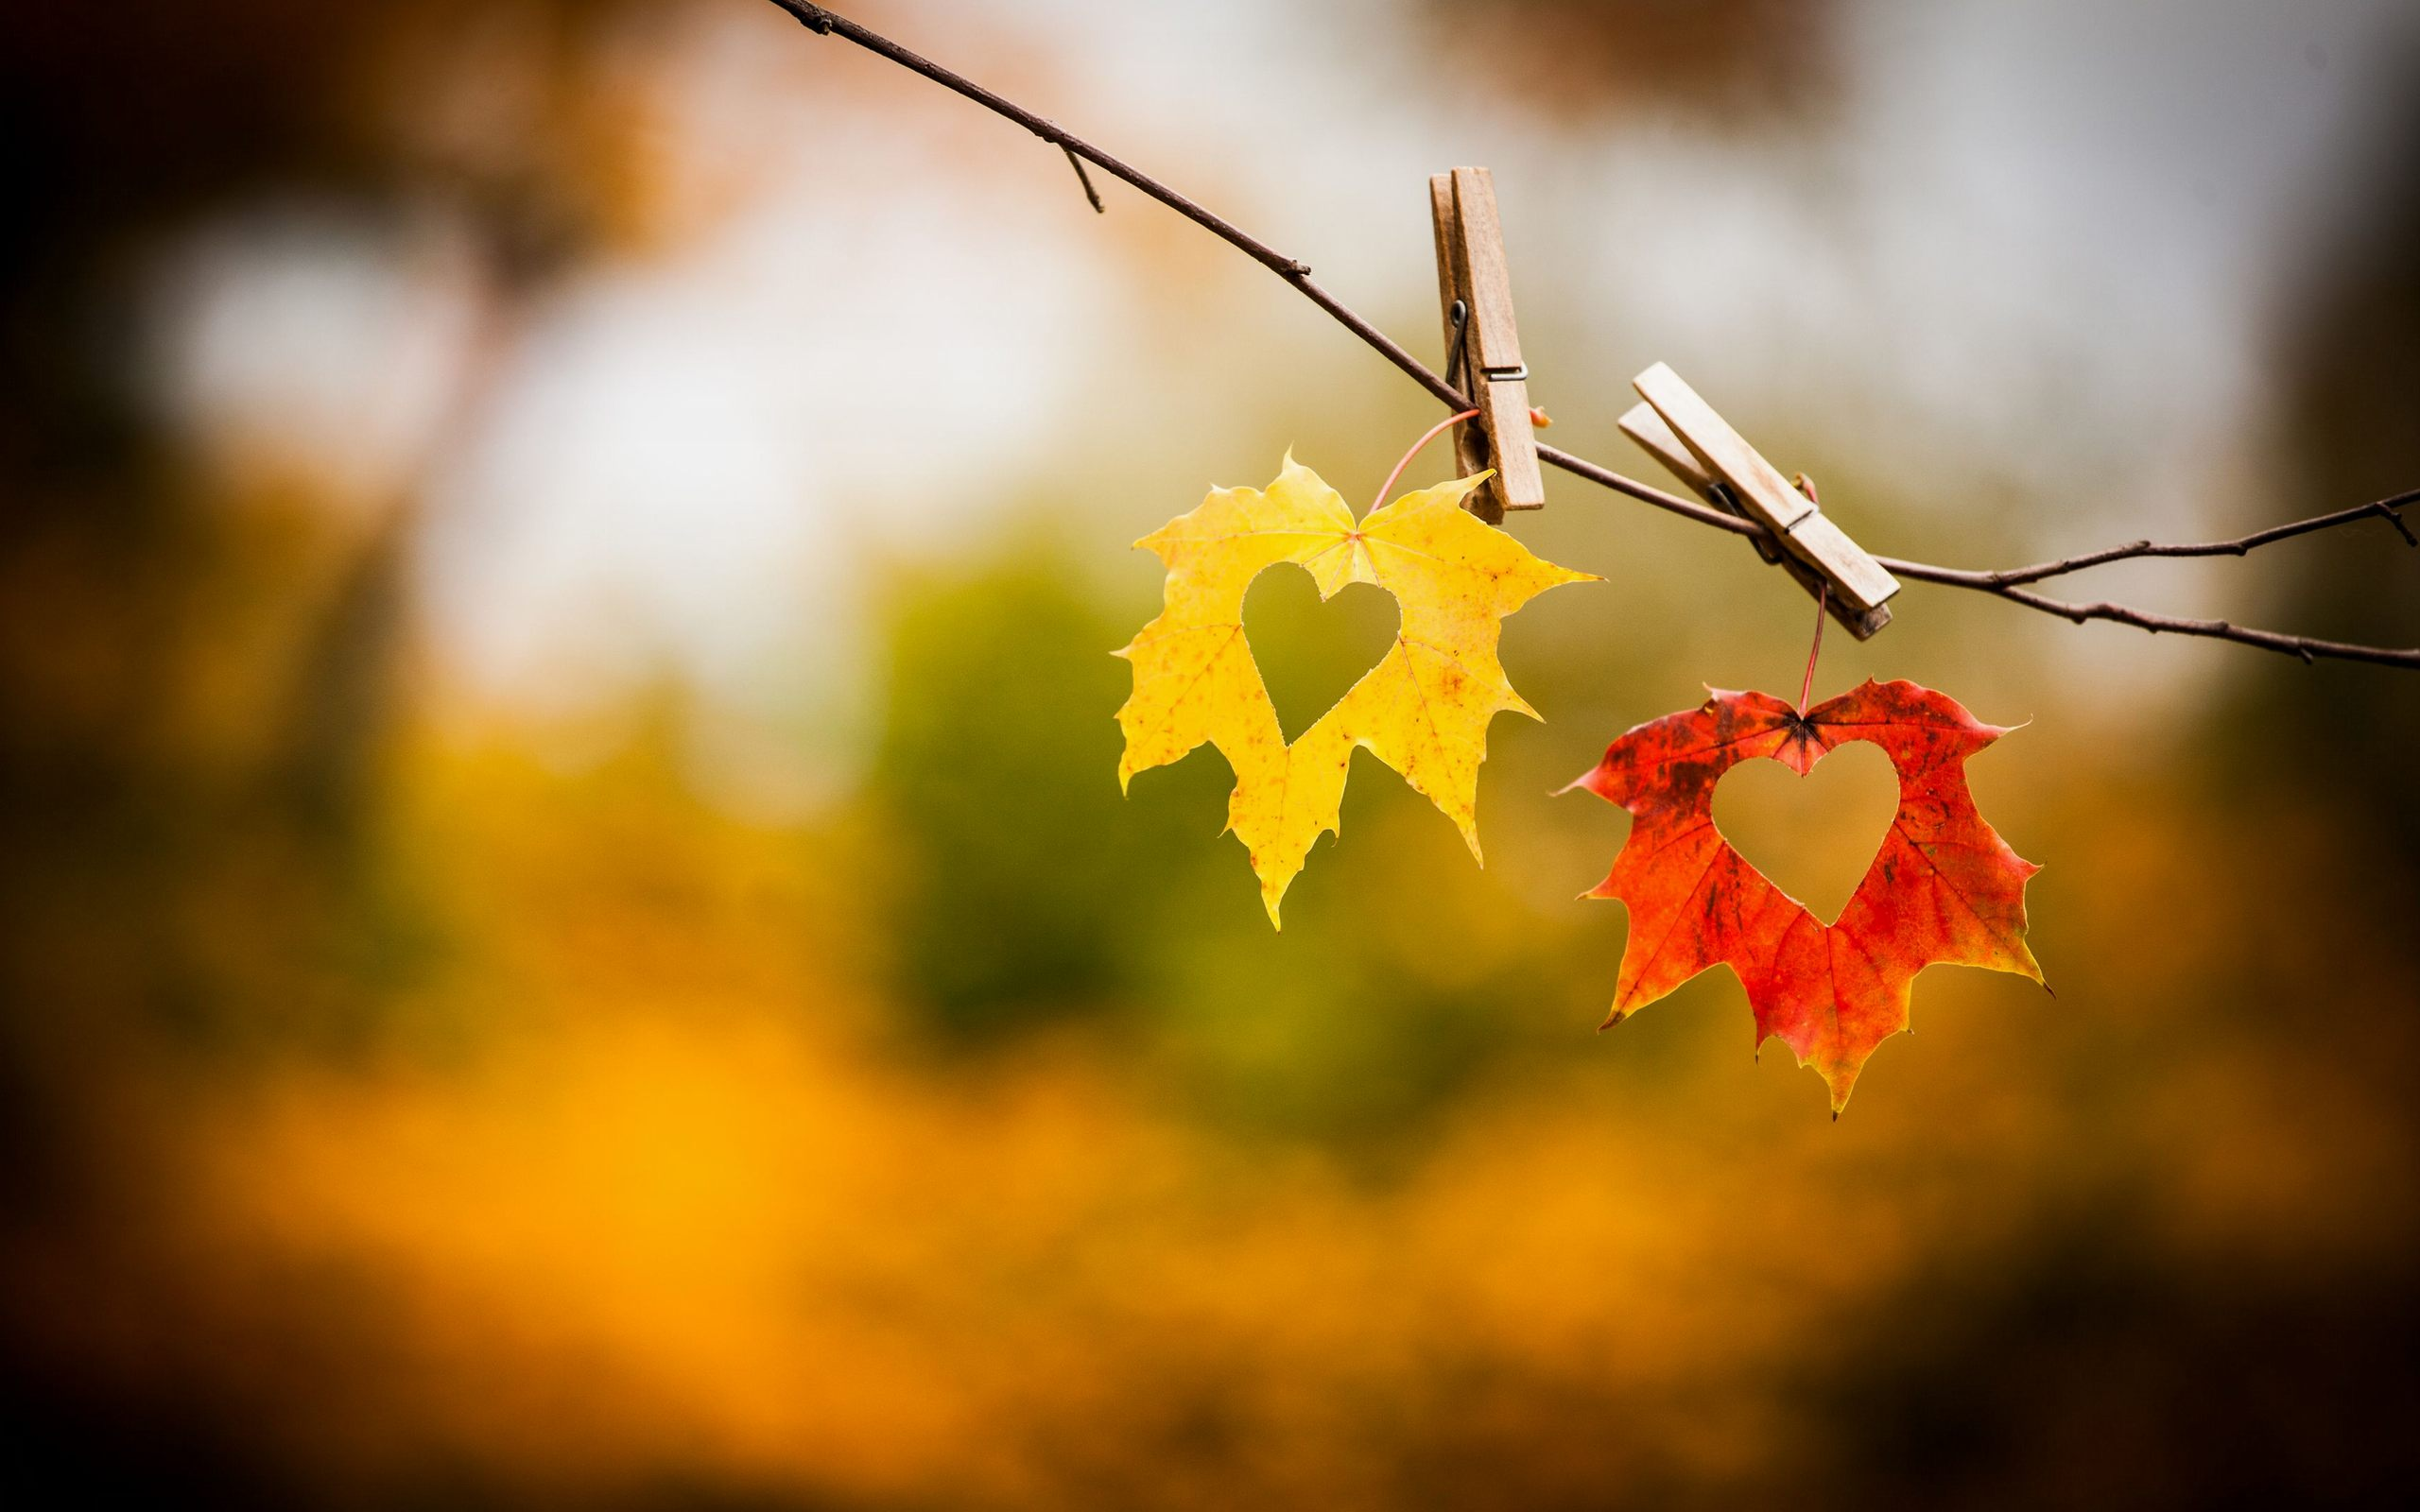 Autumn Love Wallpaper